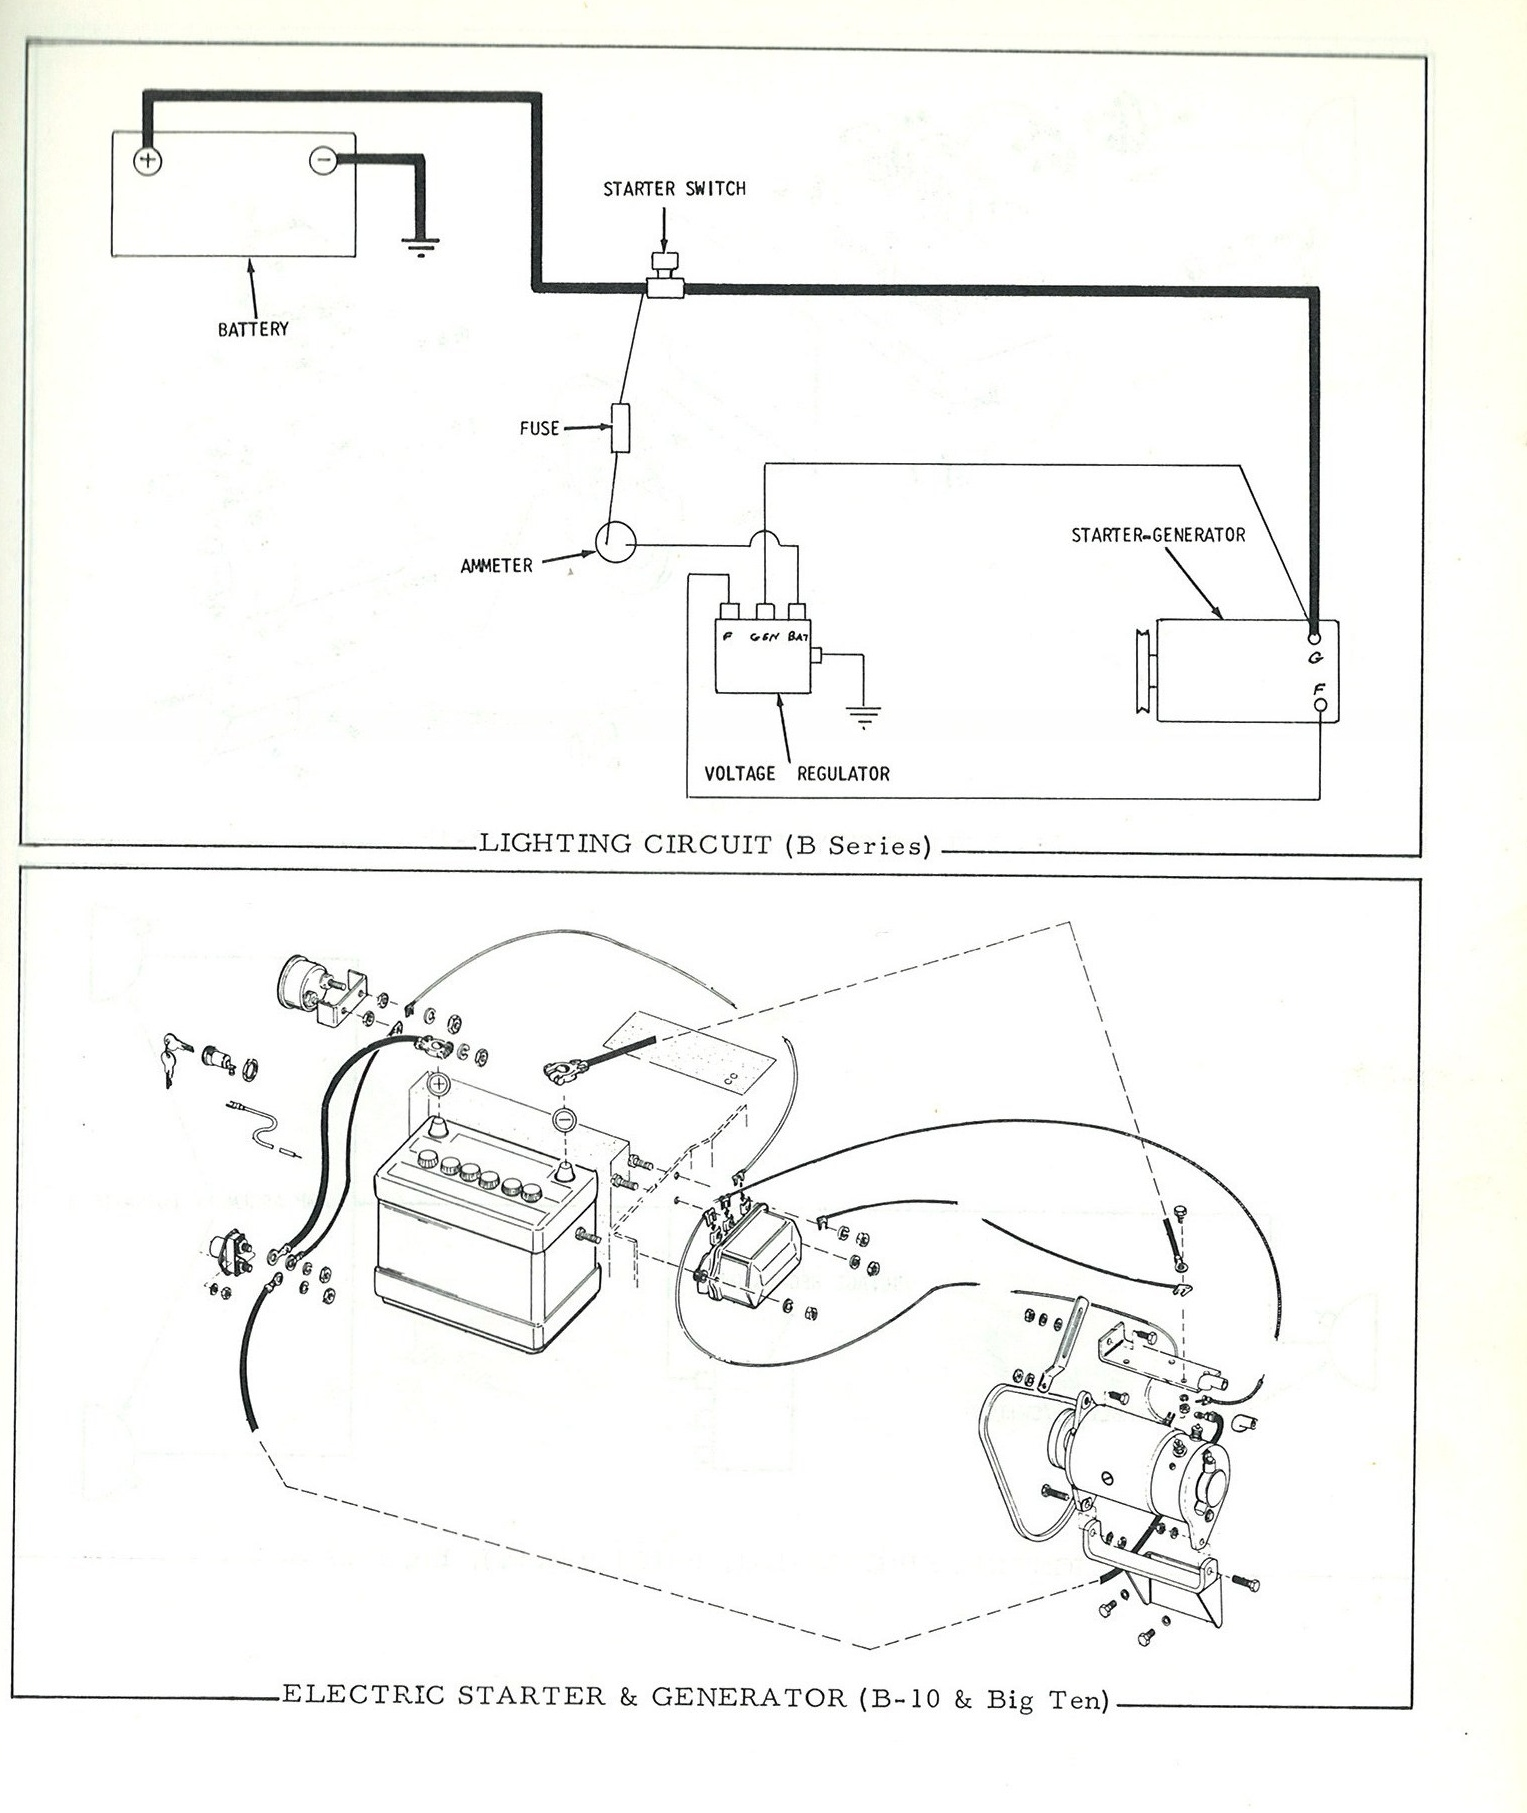 Wiring Diagram For Allis Chalmers C